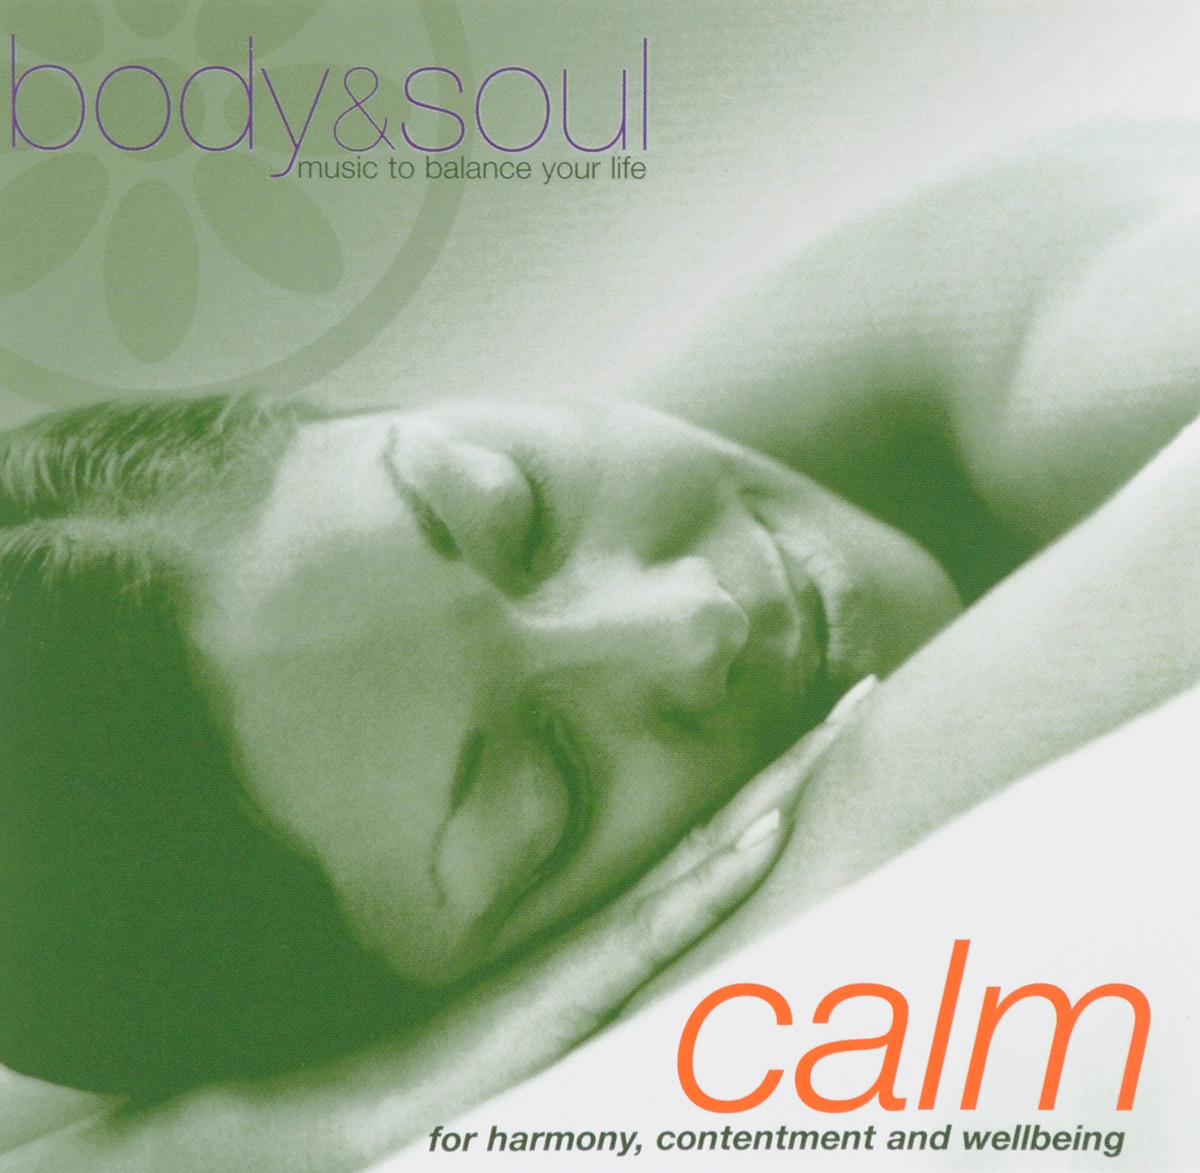 Calm. Body & Soul Music To Balanse Your Life creative life buoy pattern square shape flax pillowcase without pillow inner